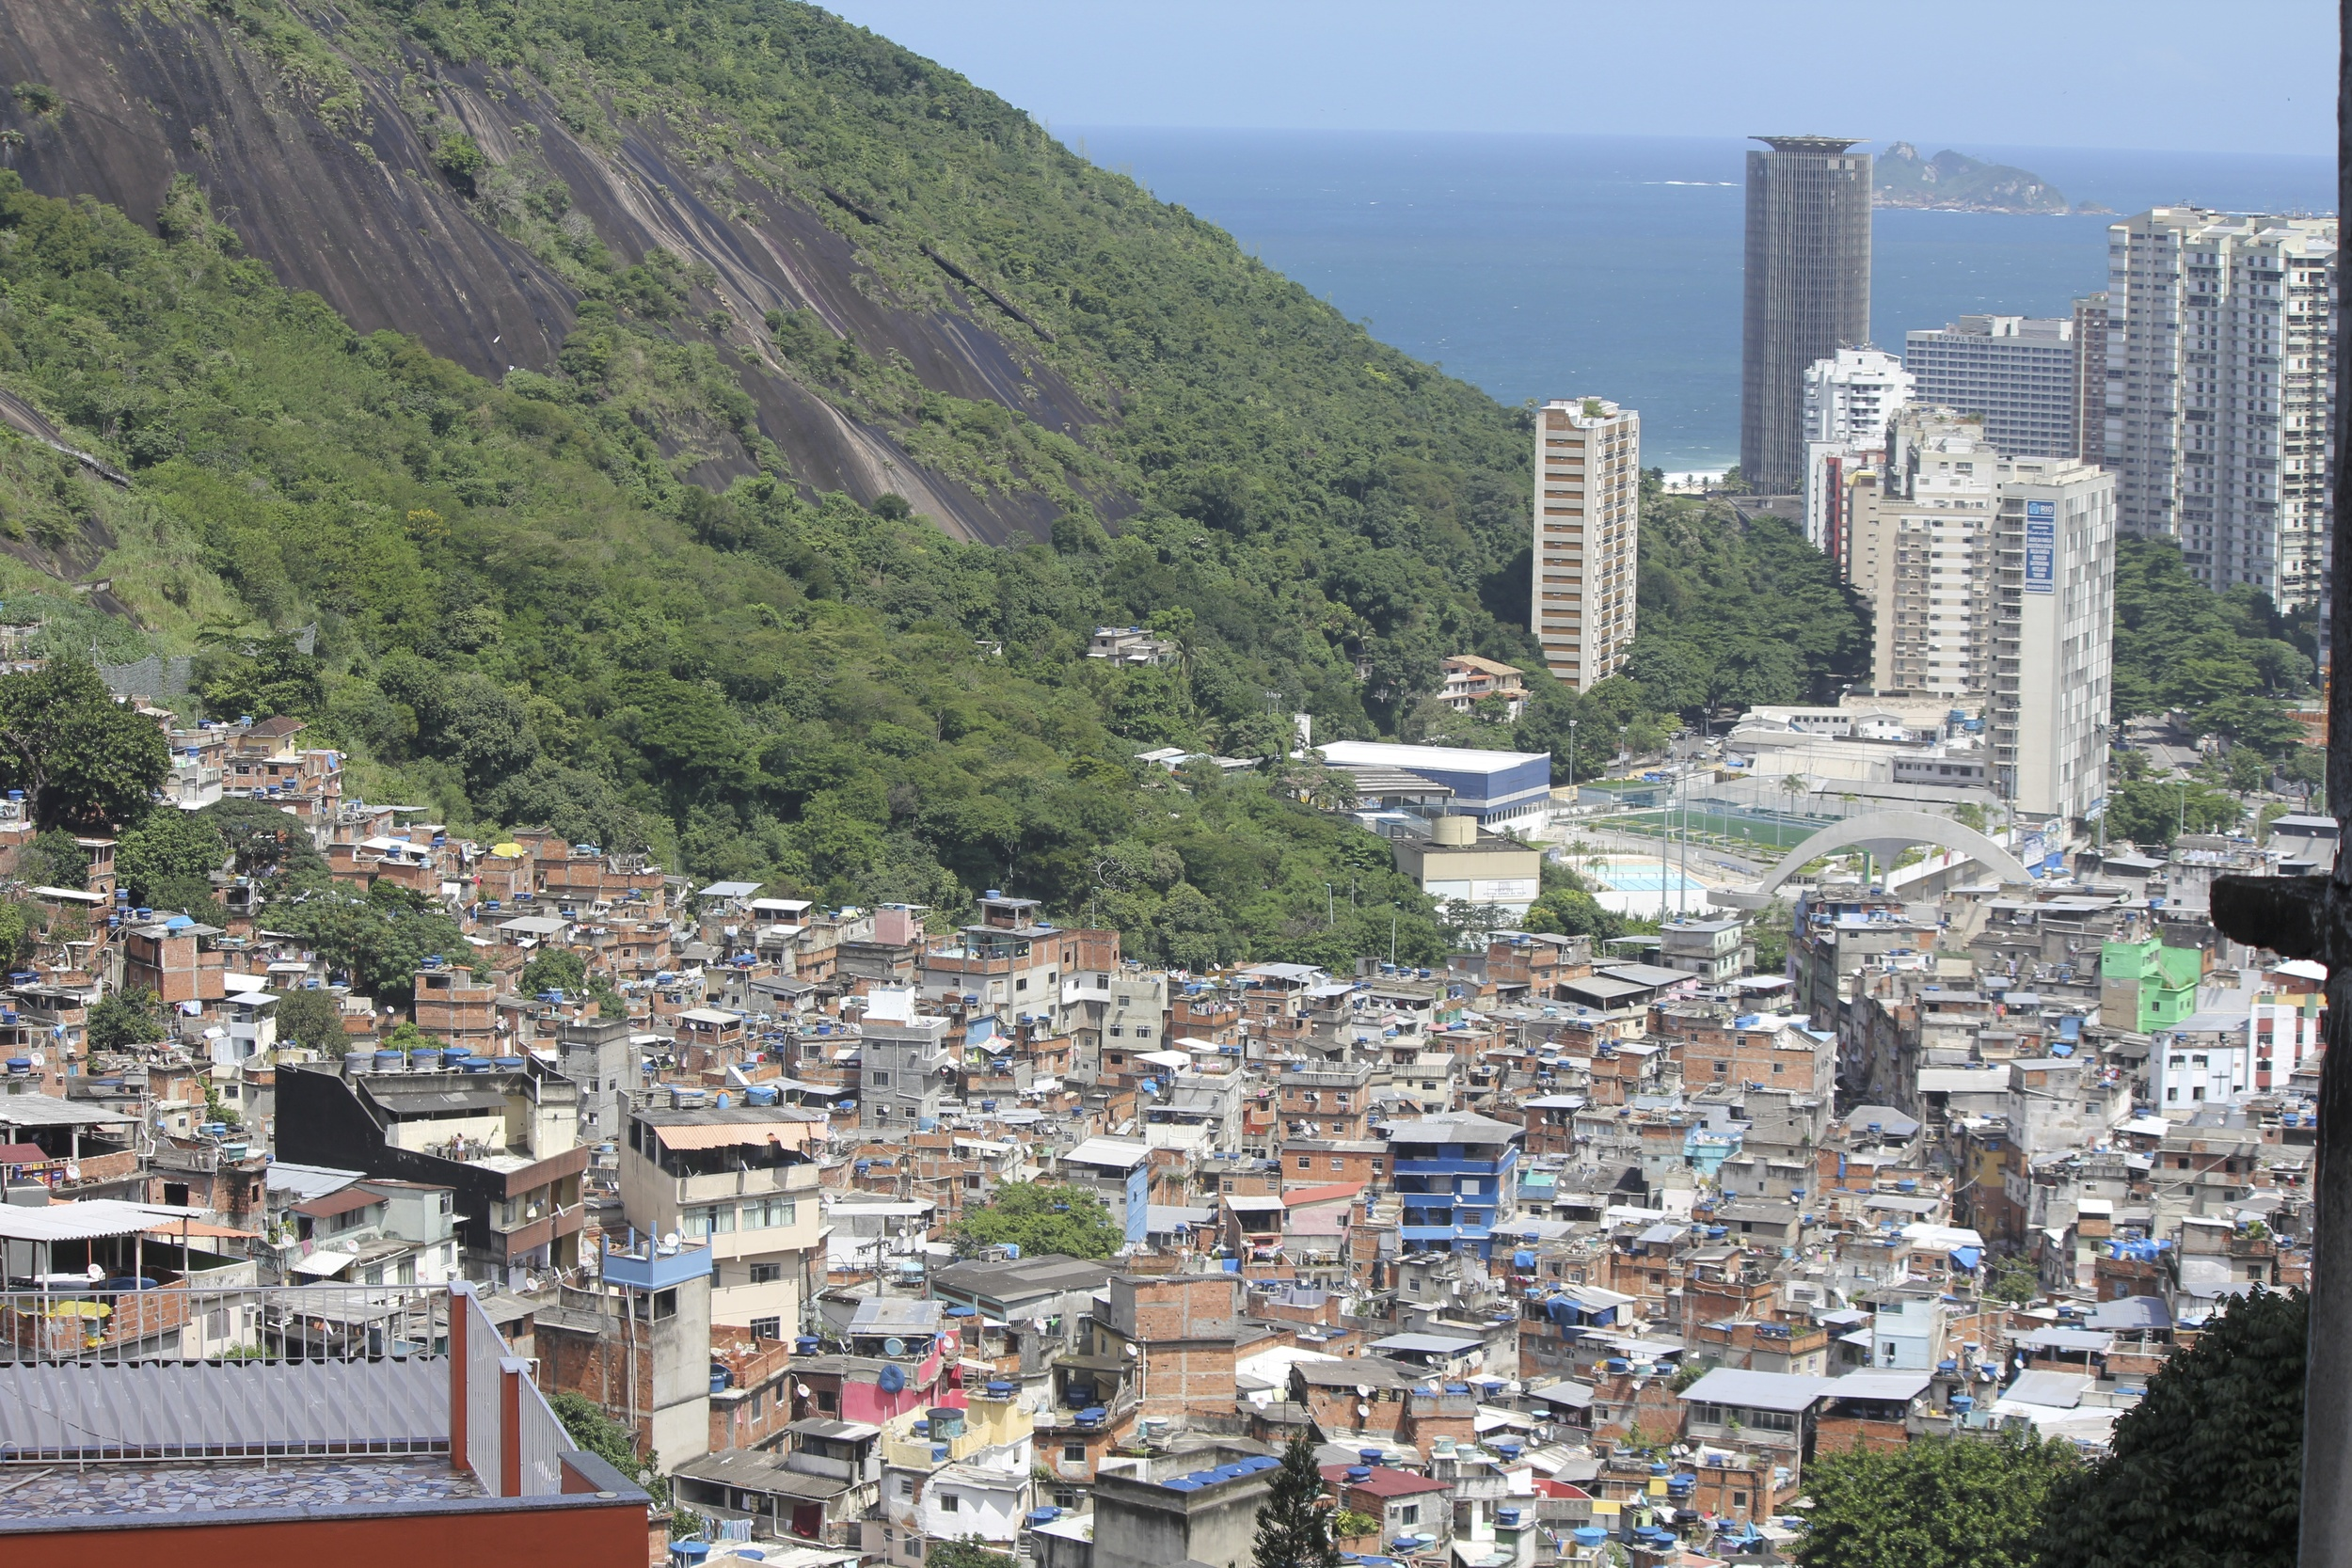 The view from Rocinha